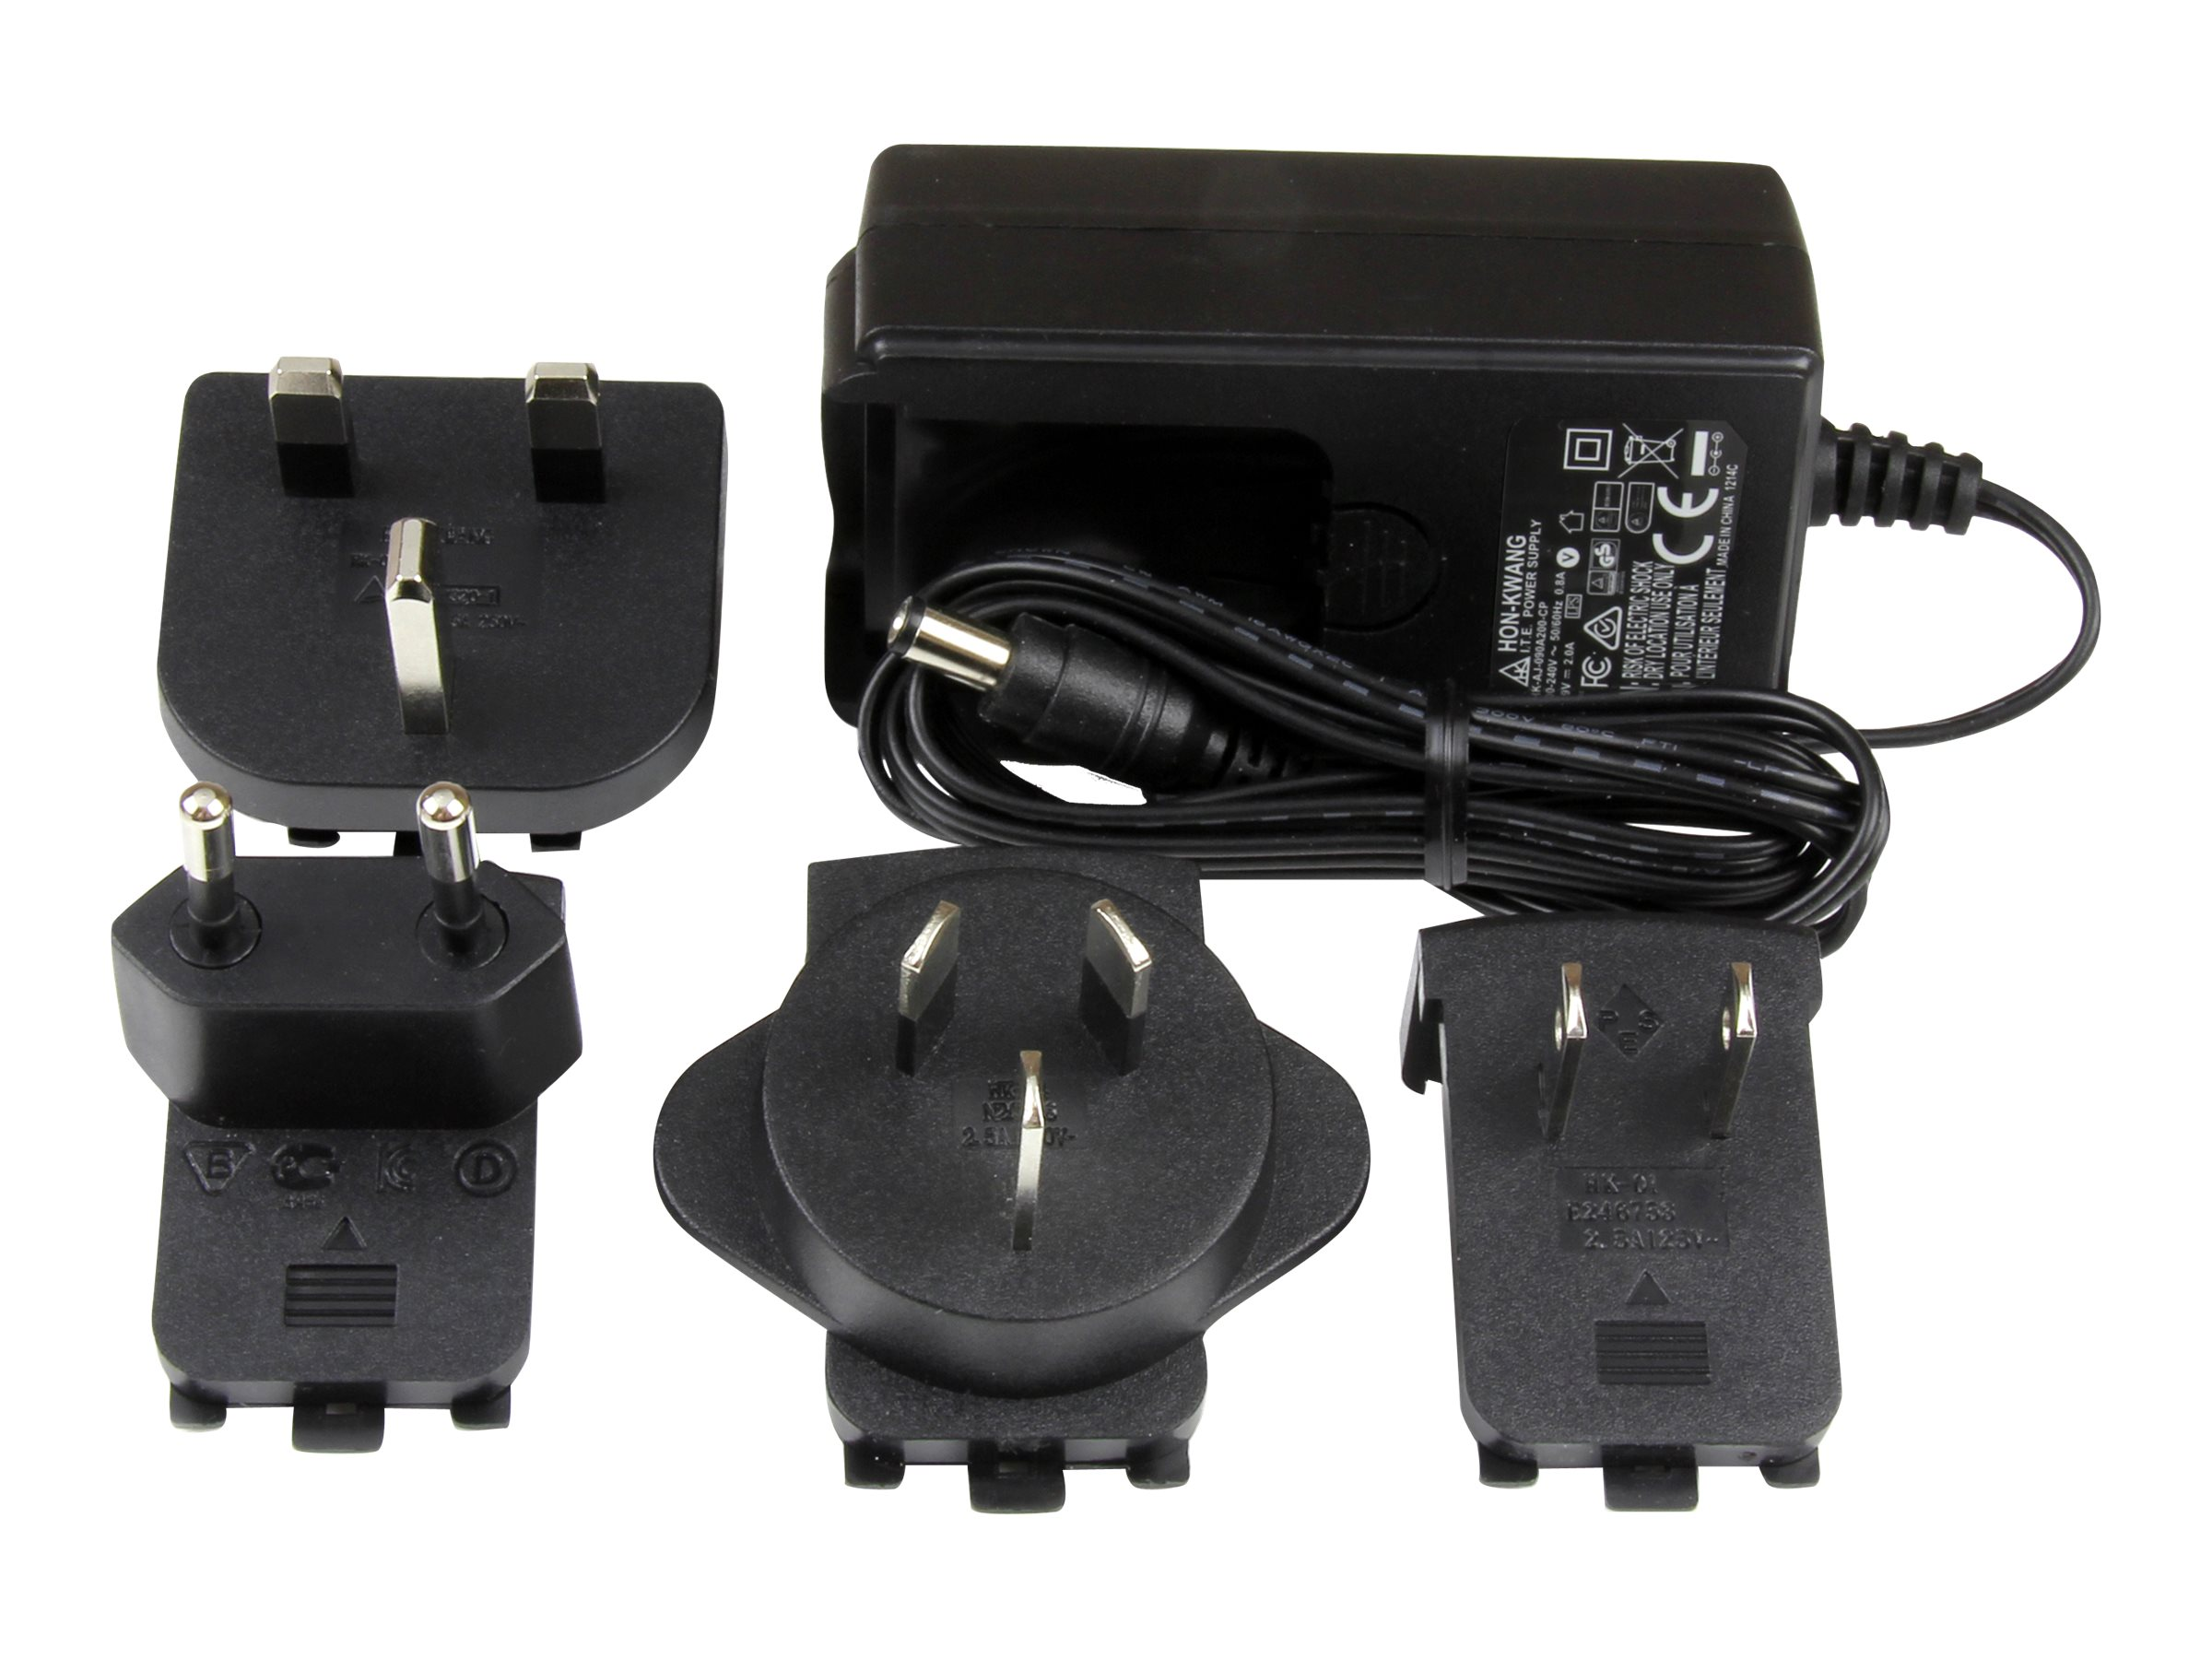 StarTech.com DC Power Adapter 9V, 2A, SVA9M2NEUA